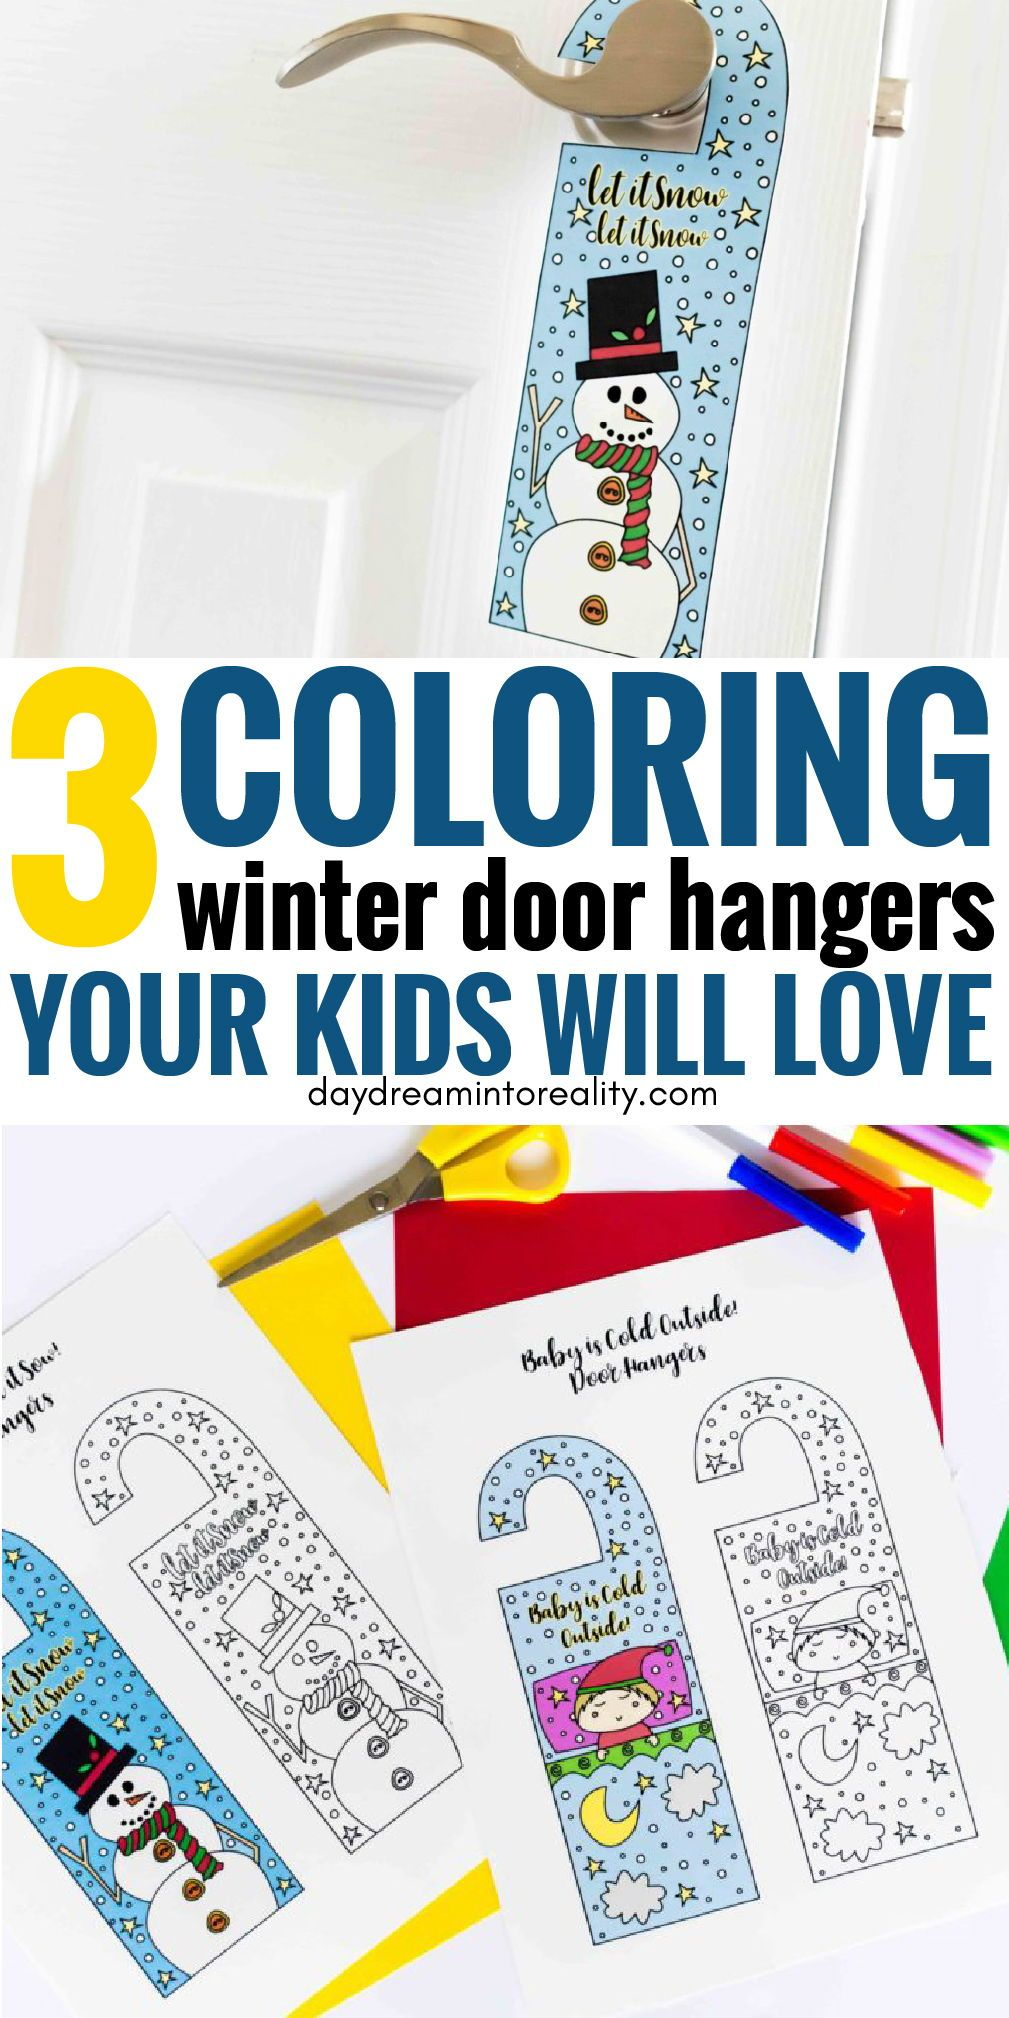 Coloring Winter Door Hangers Free Printable Since it's almost winter time I wanted to bring you something winter related for your kids.  I came up with these Coloring Winter Door Hangers Free Printable. They will look so adorable on your child's bedroom door!